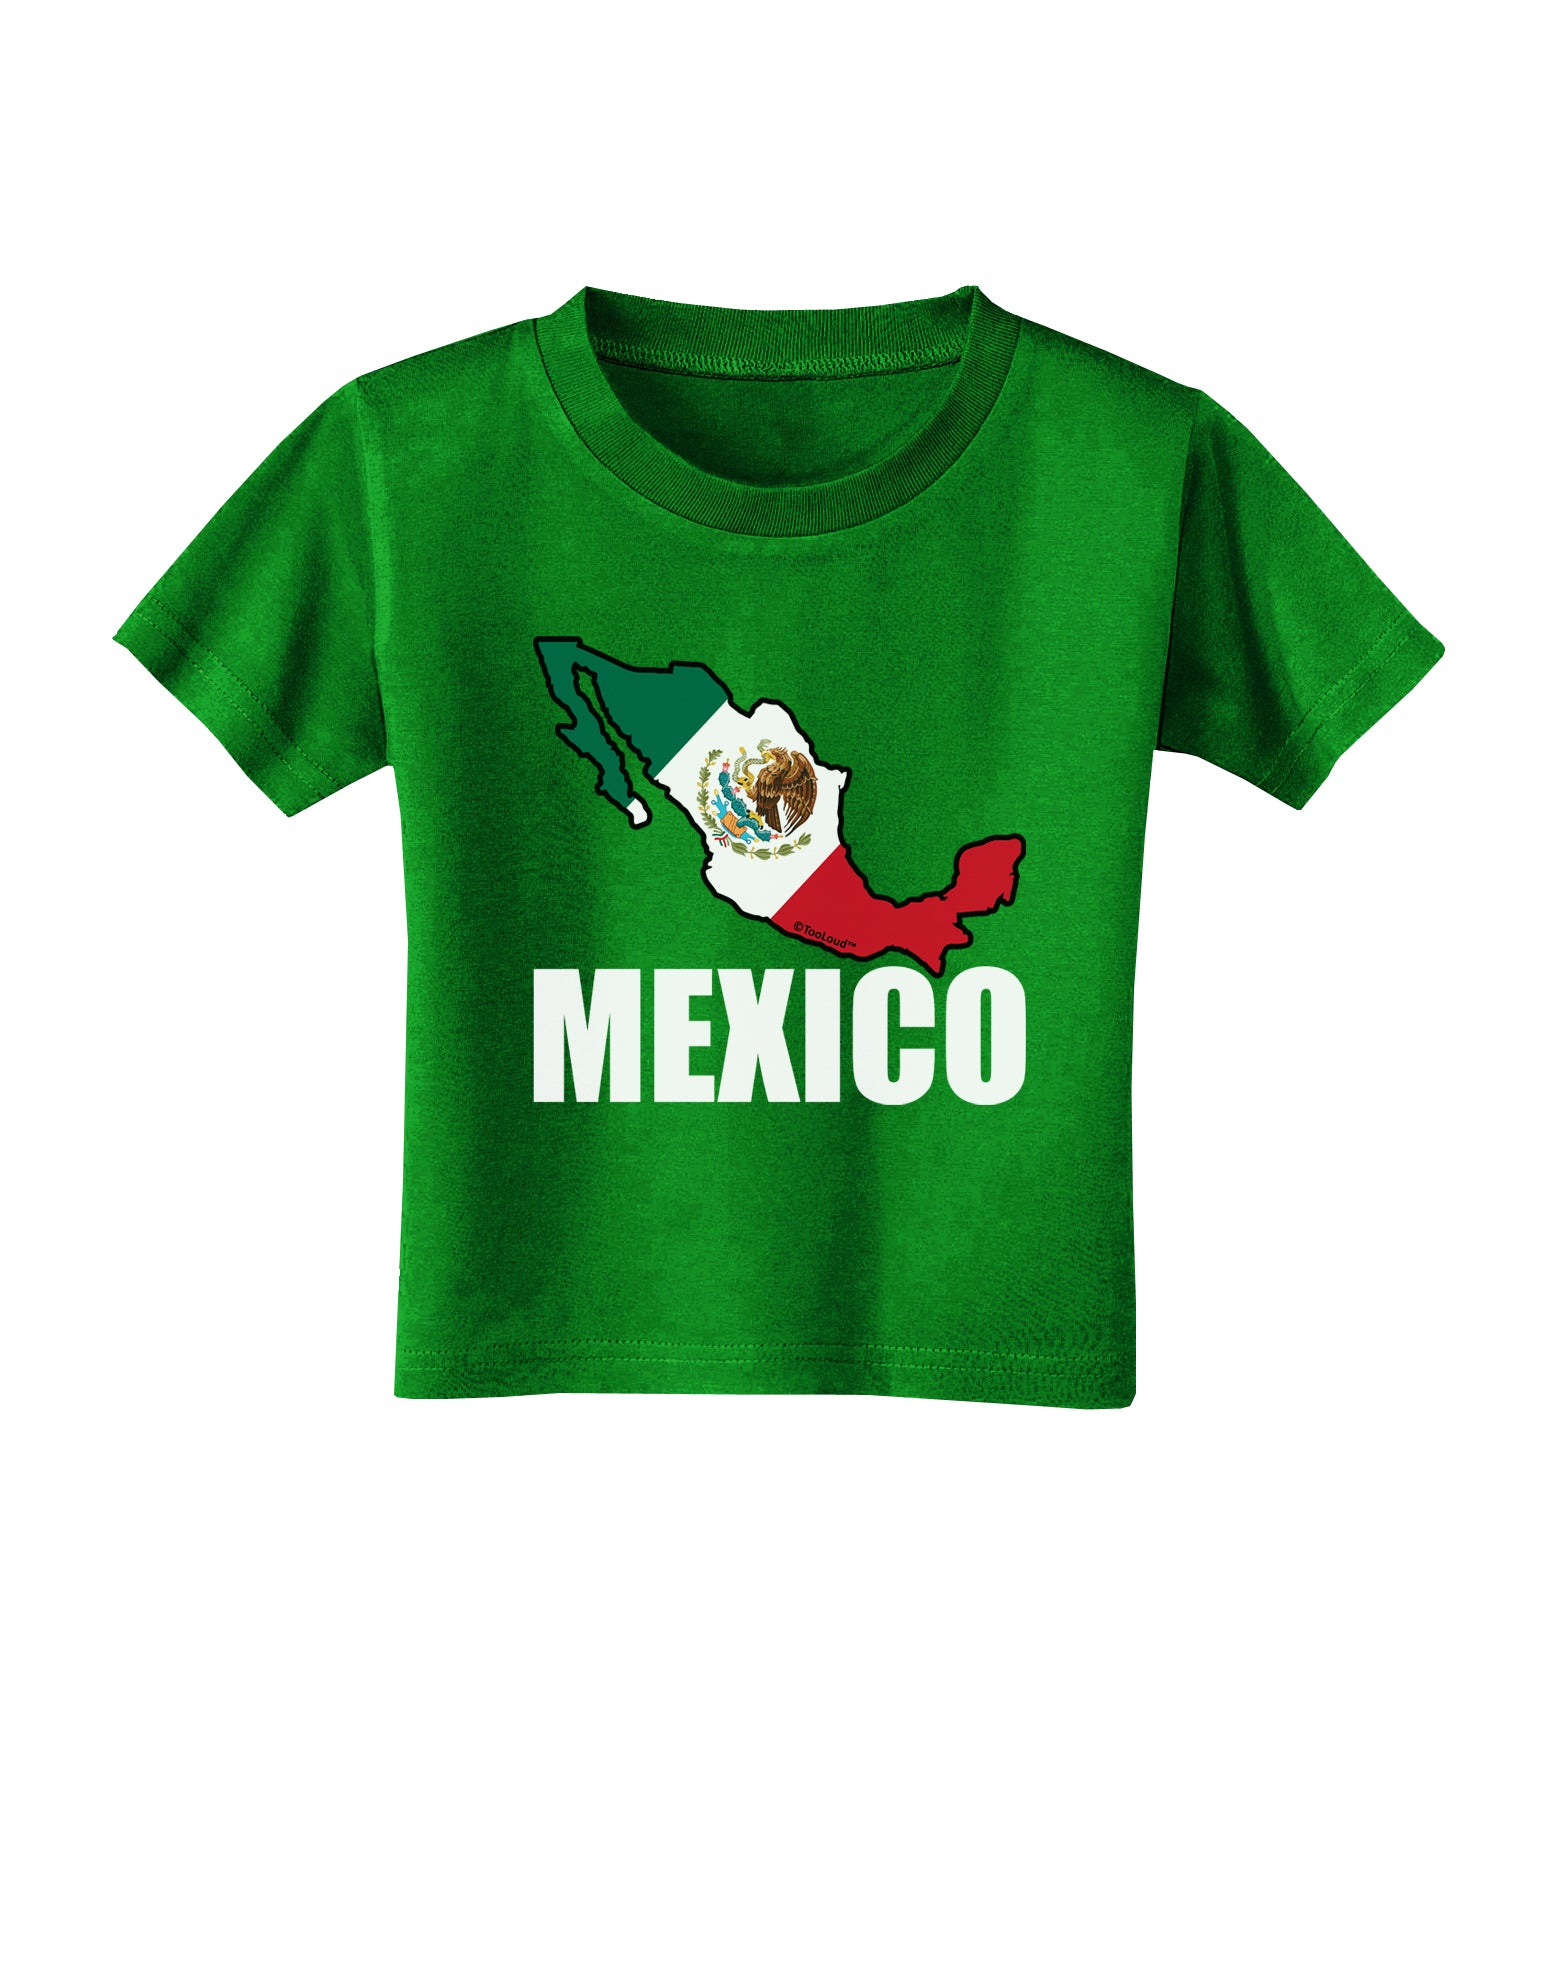 Mexico Outline - Mexican Flag - Mexico Text Toddler T ...